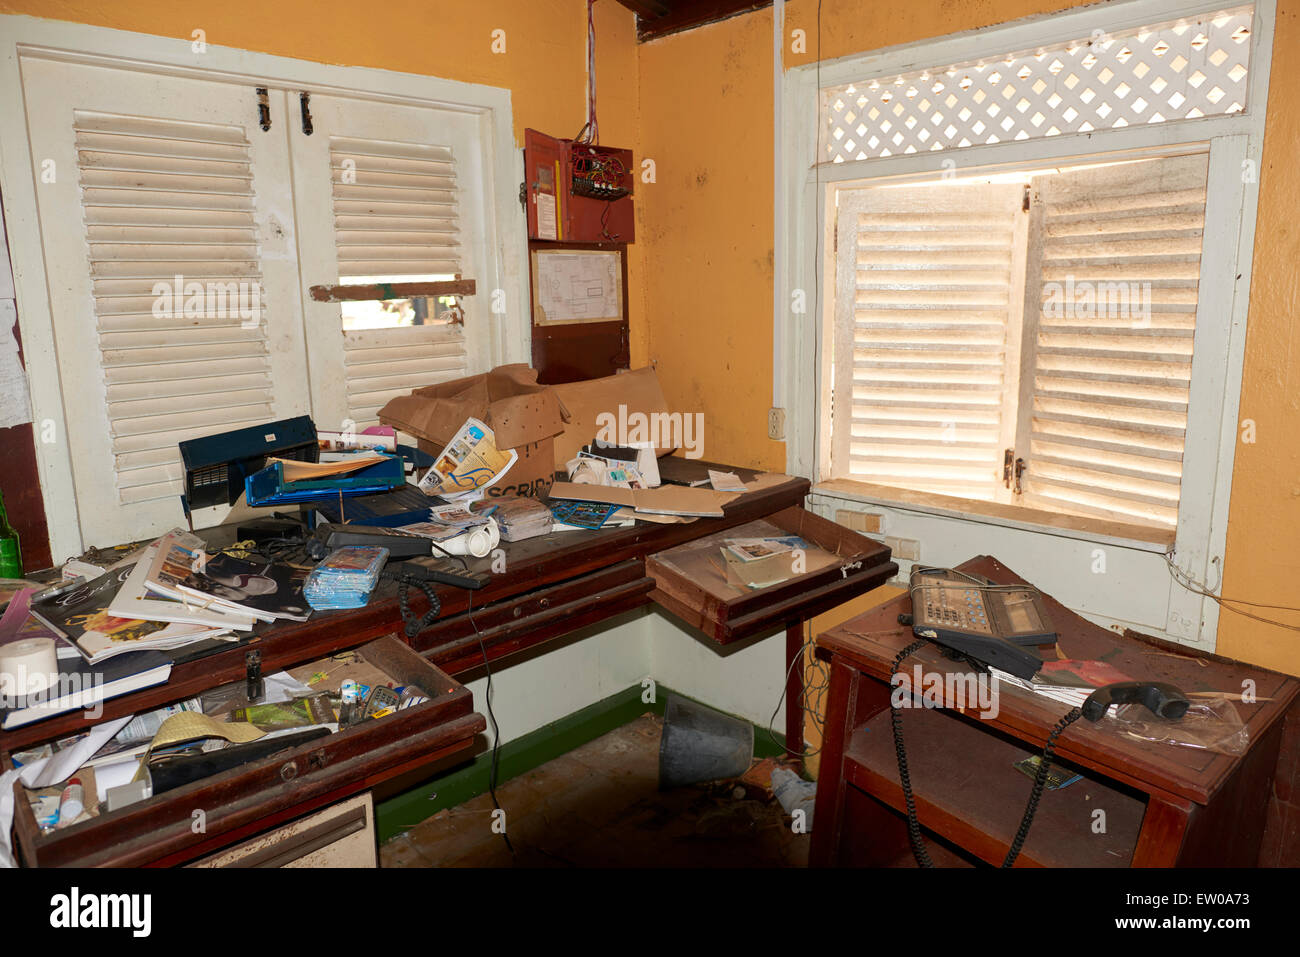 Abandoned office with furniture - Stock Image